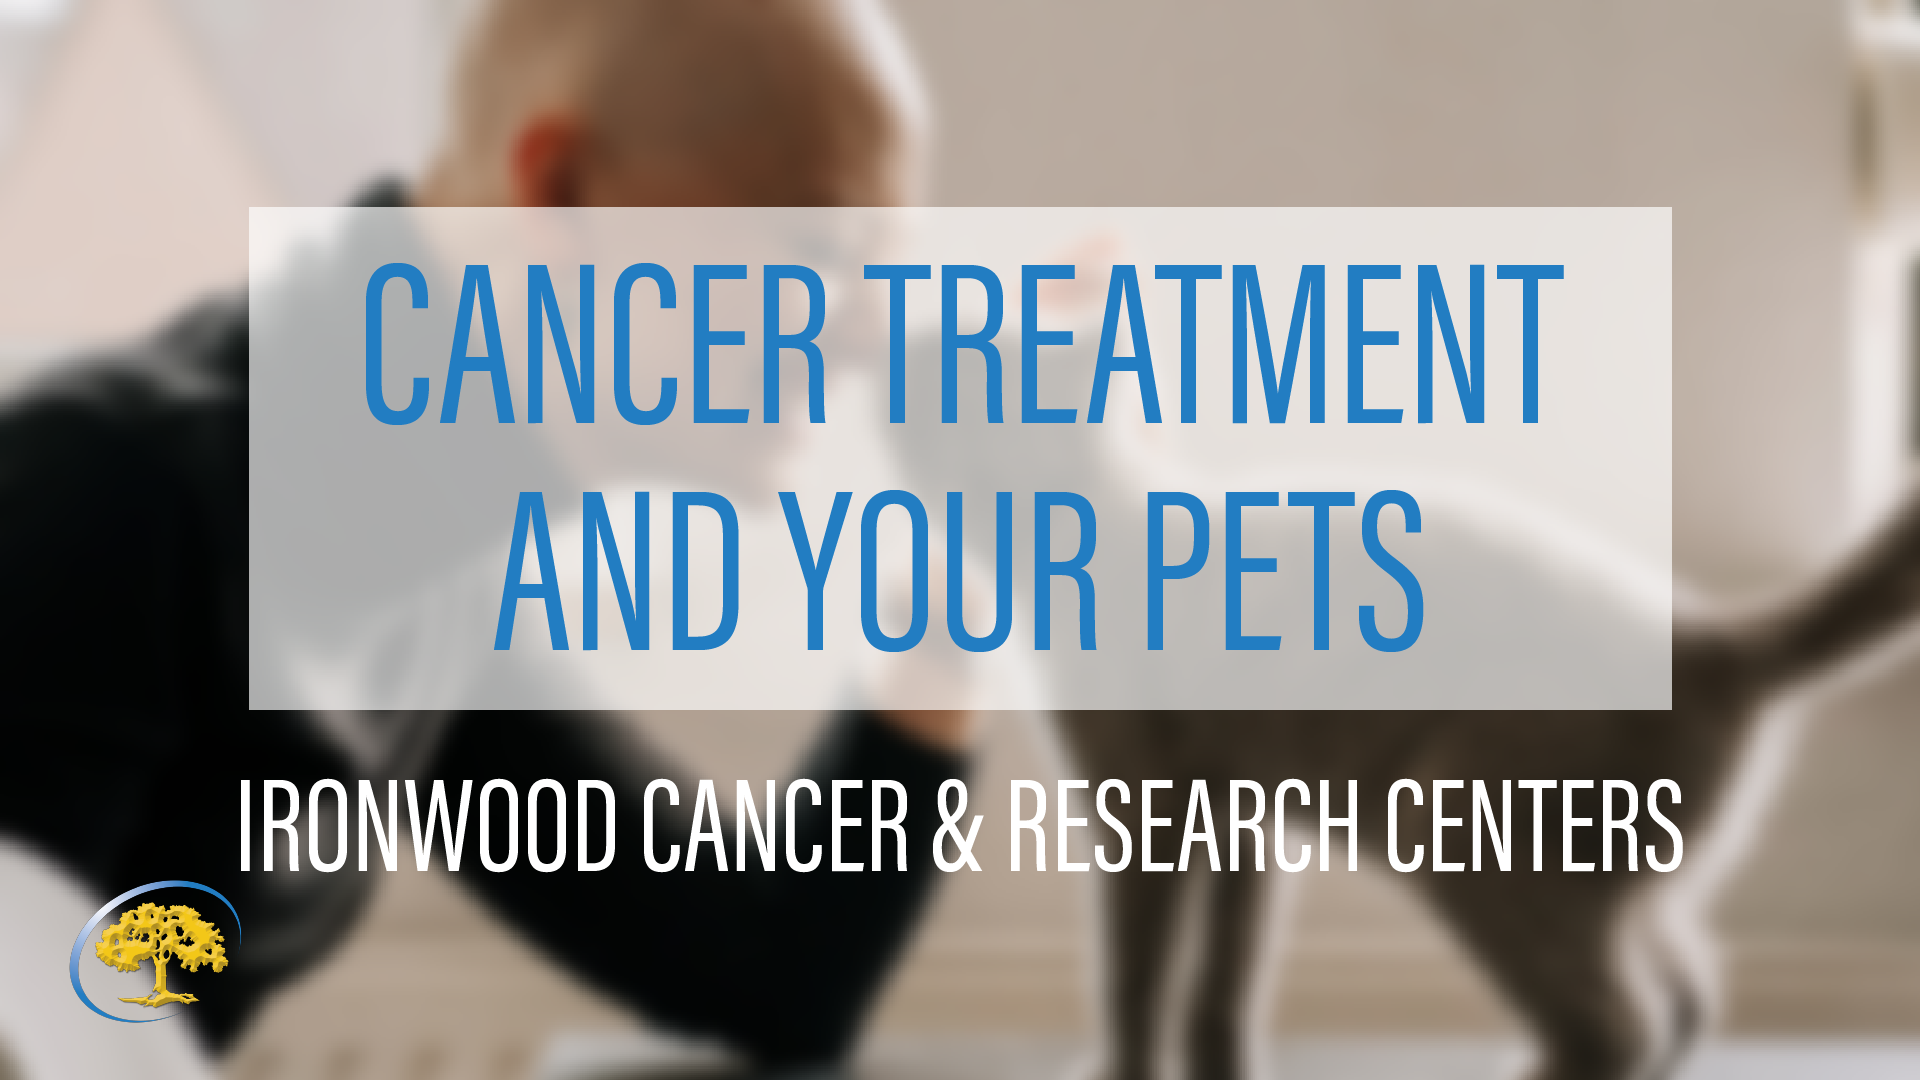 Dr. Robert Yoo Cancer Treatment and Your Pets